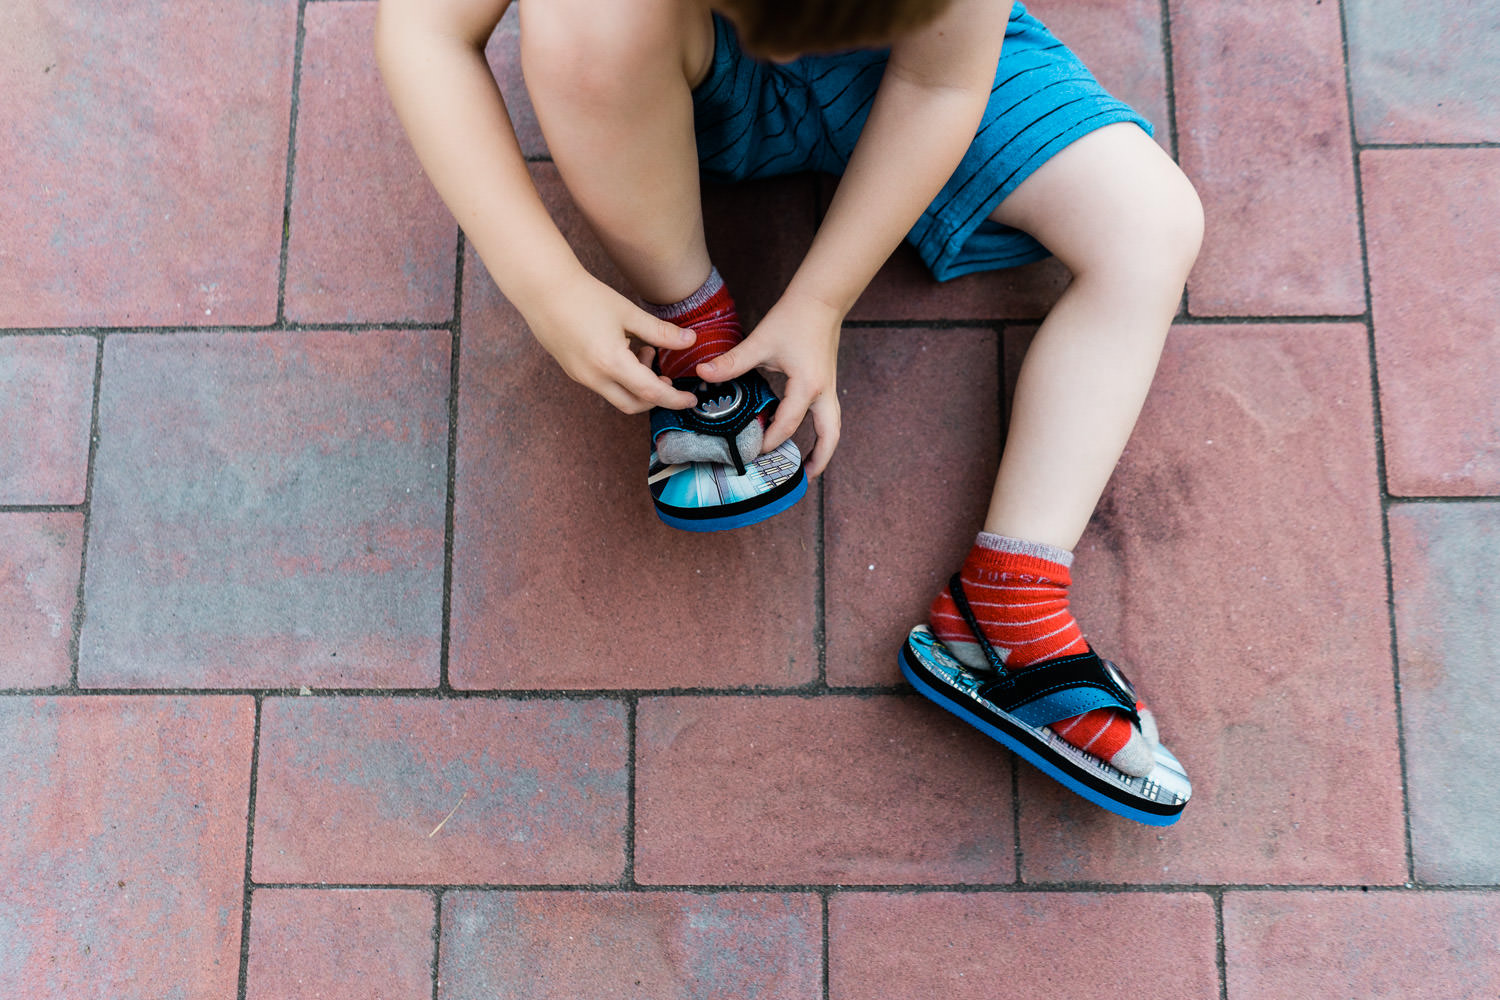 A little boy tries to put flip flops on with socks.